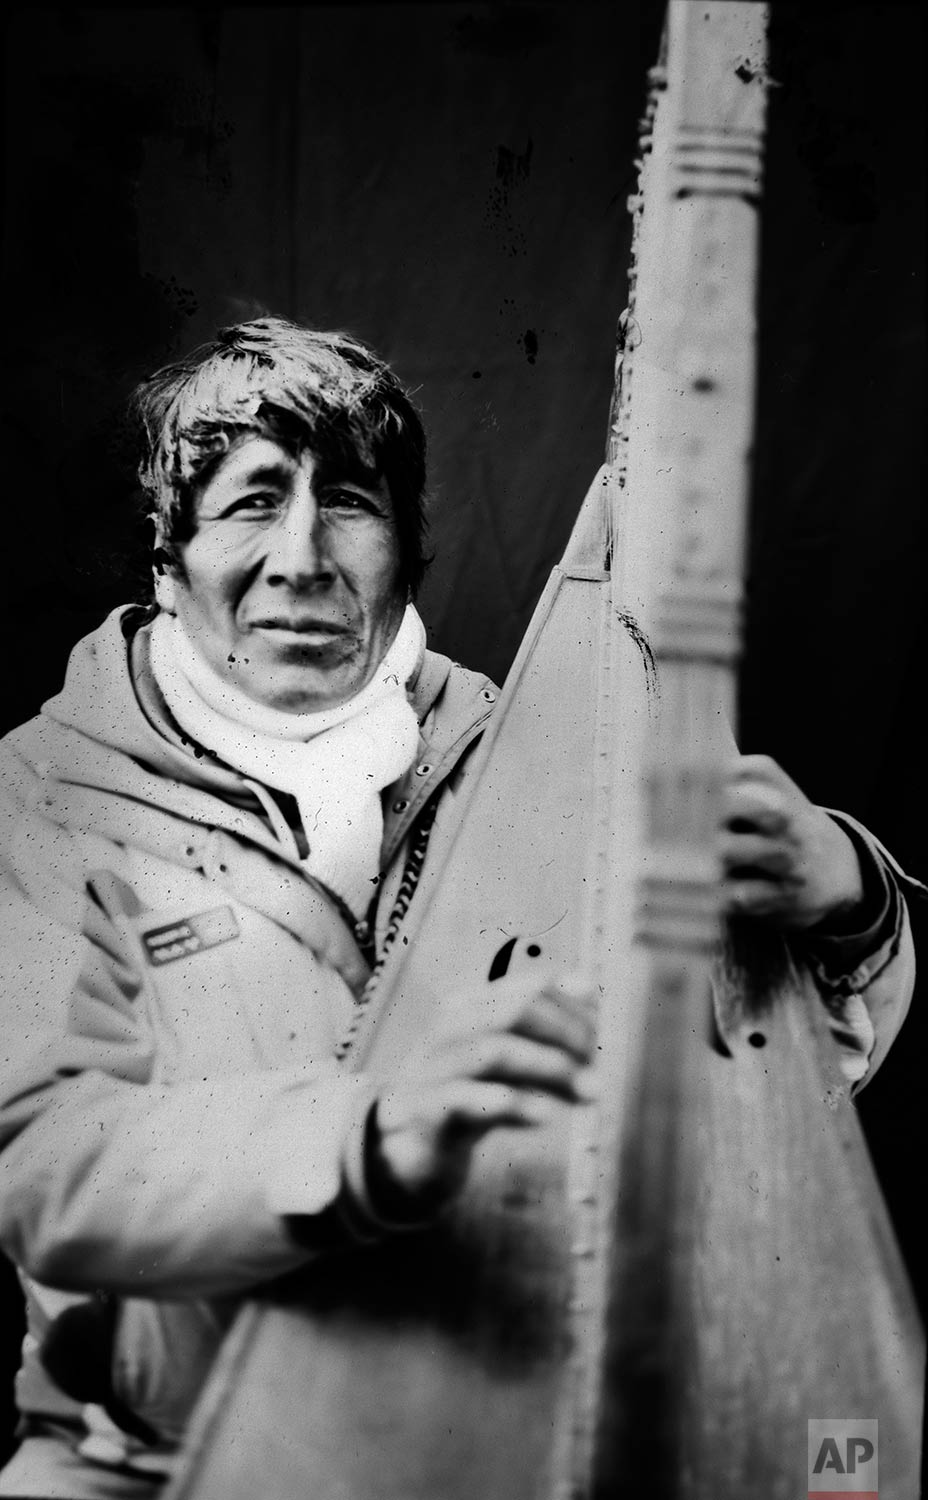 In this June 12, 2017 photo, contract musician Eulogio Quispe Chalco, 54, poses for a portrait with his Peruvian harp, in the Sinakara Valley, in Peru's Cusco region, during the Qoyllur Rit'i festival, translated from the Quechua language as Snow Star. The Peruvian variation of the harp has no peddles. (AP Photo/Rodrigo Abd)